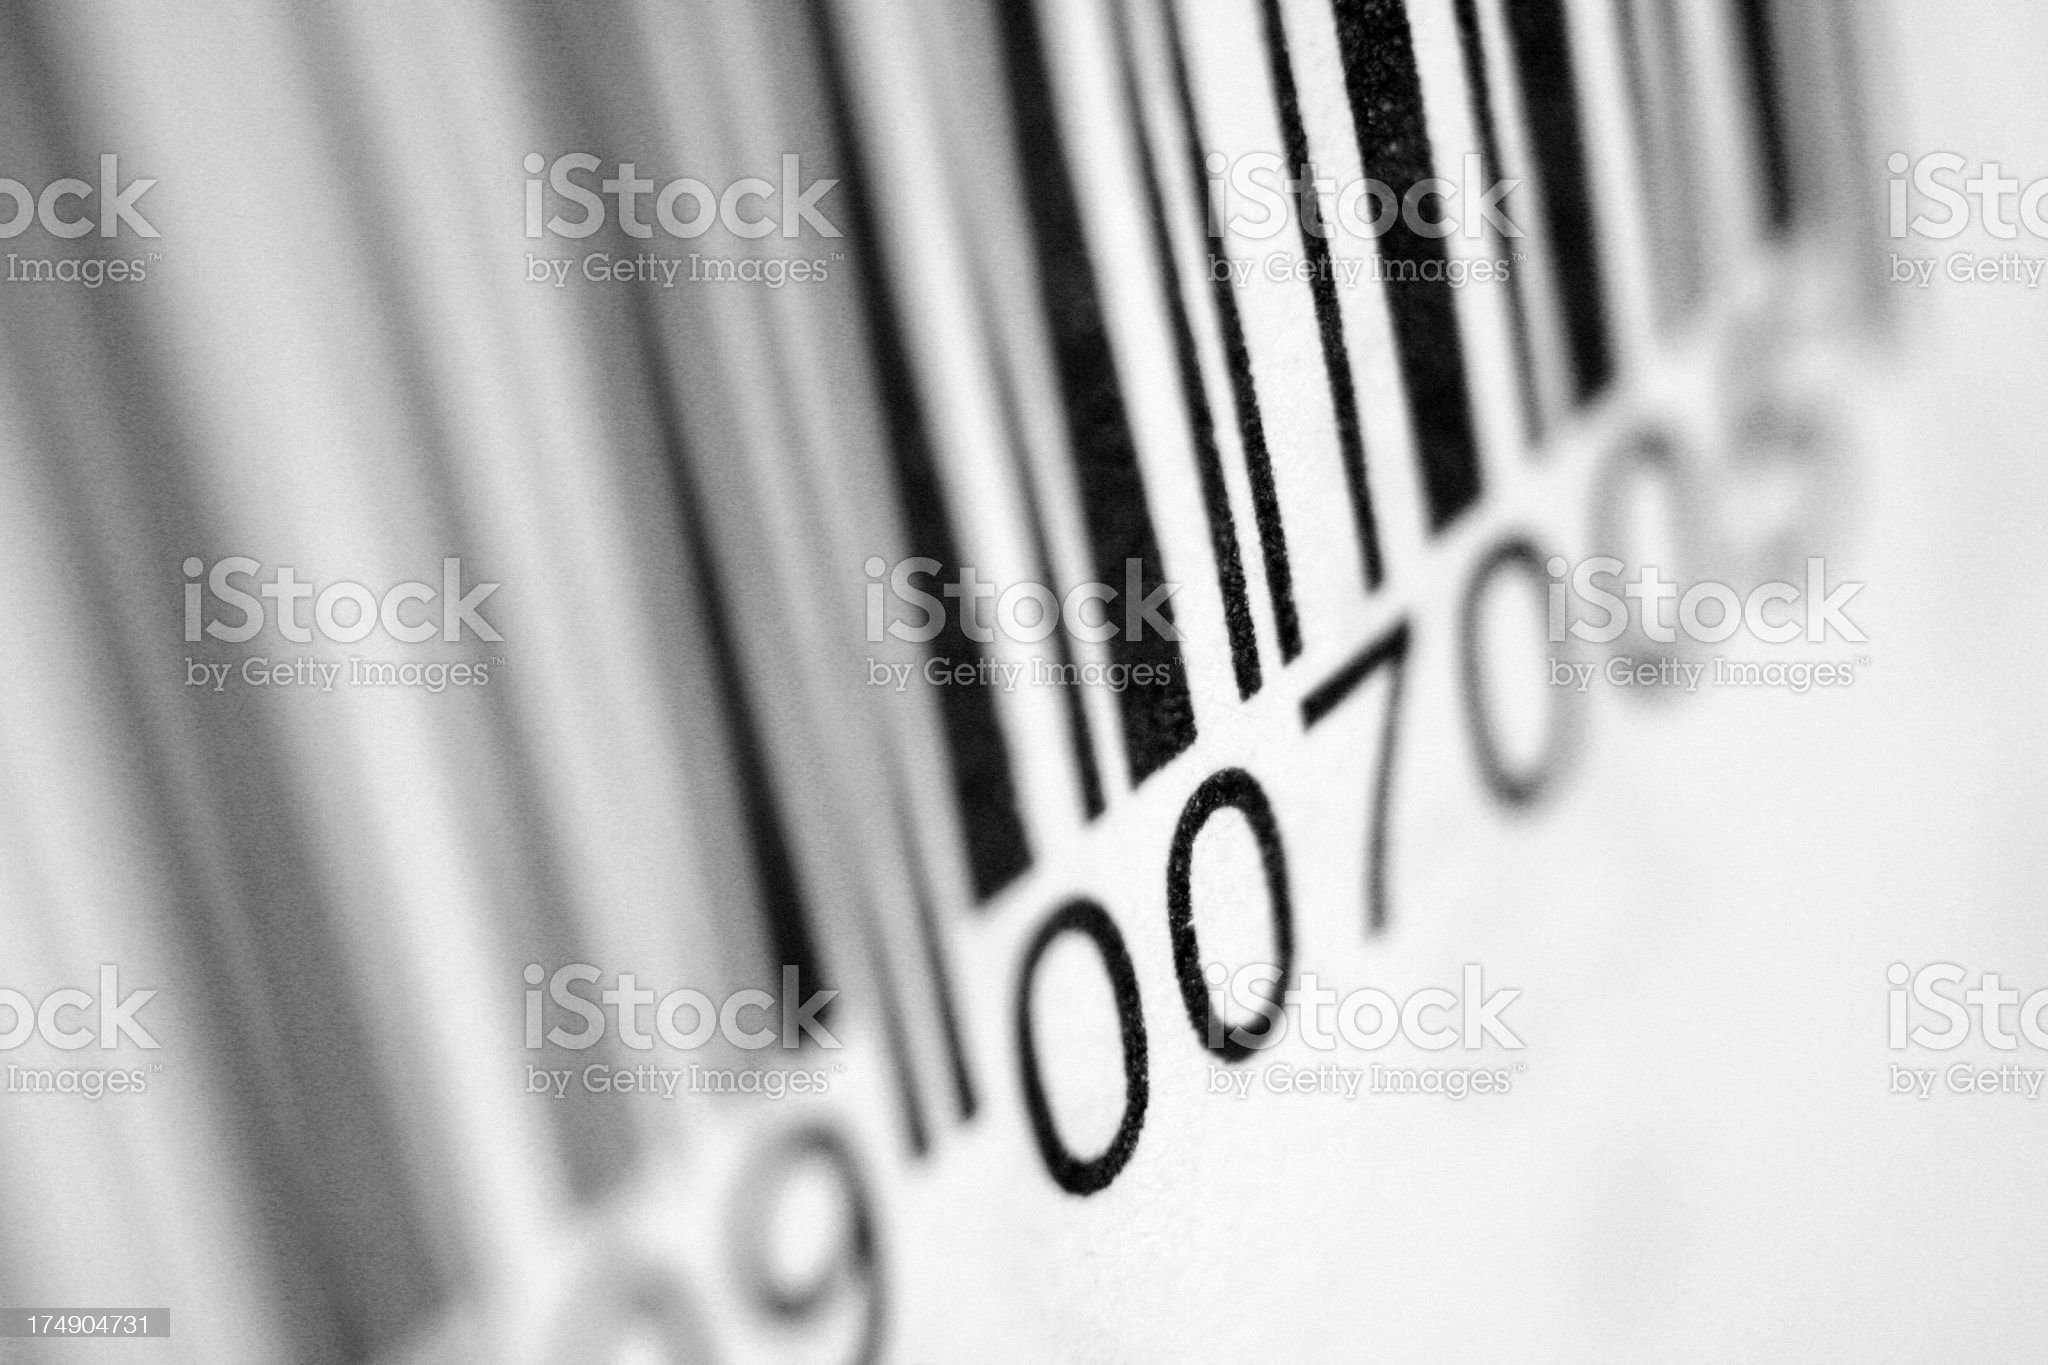 Close up view of bar code with blurred sides royalty-free stock photo